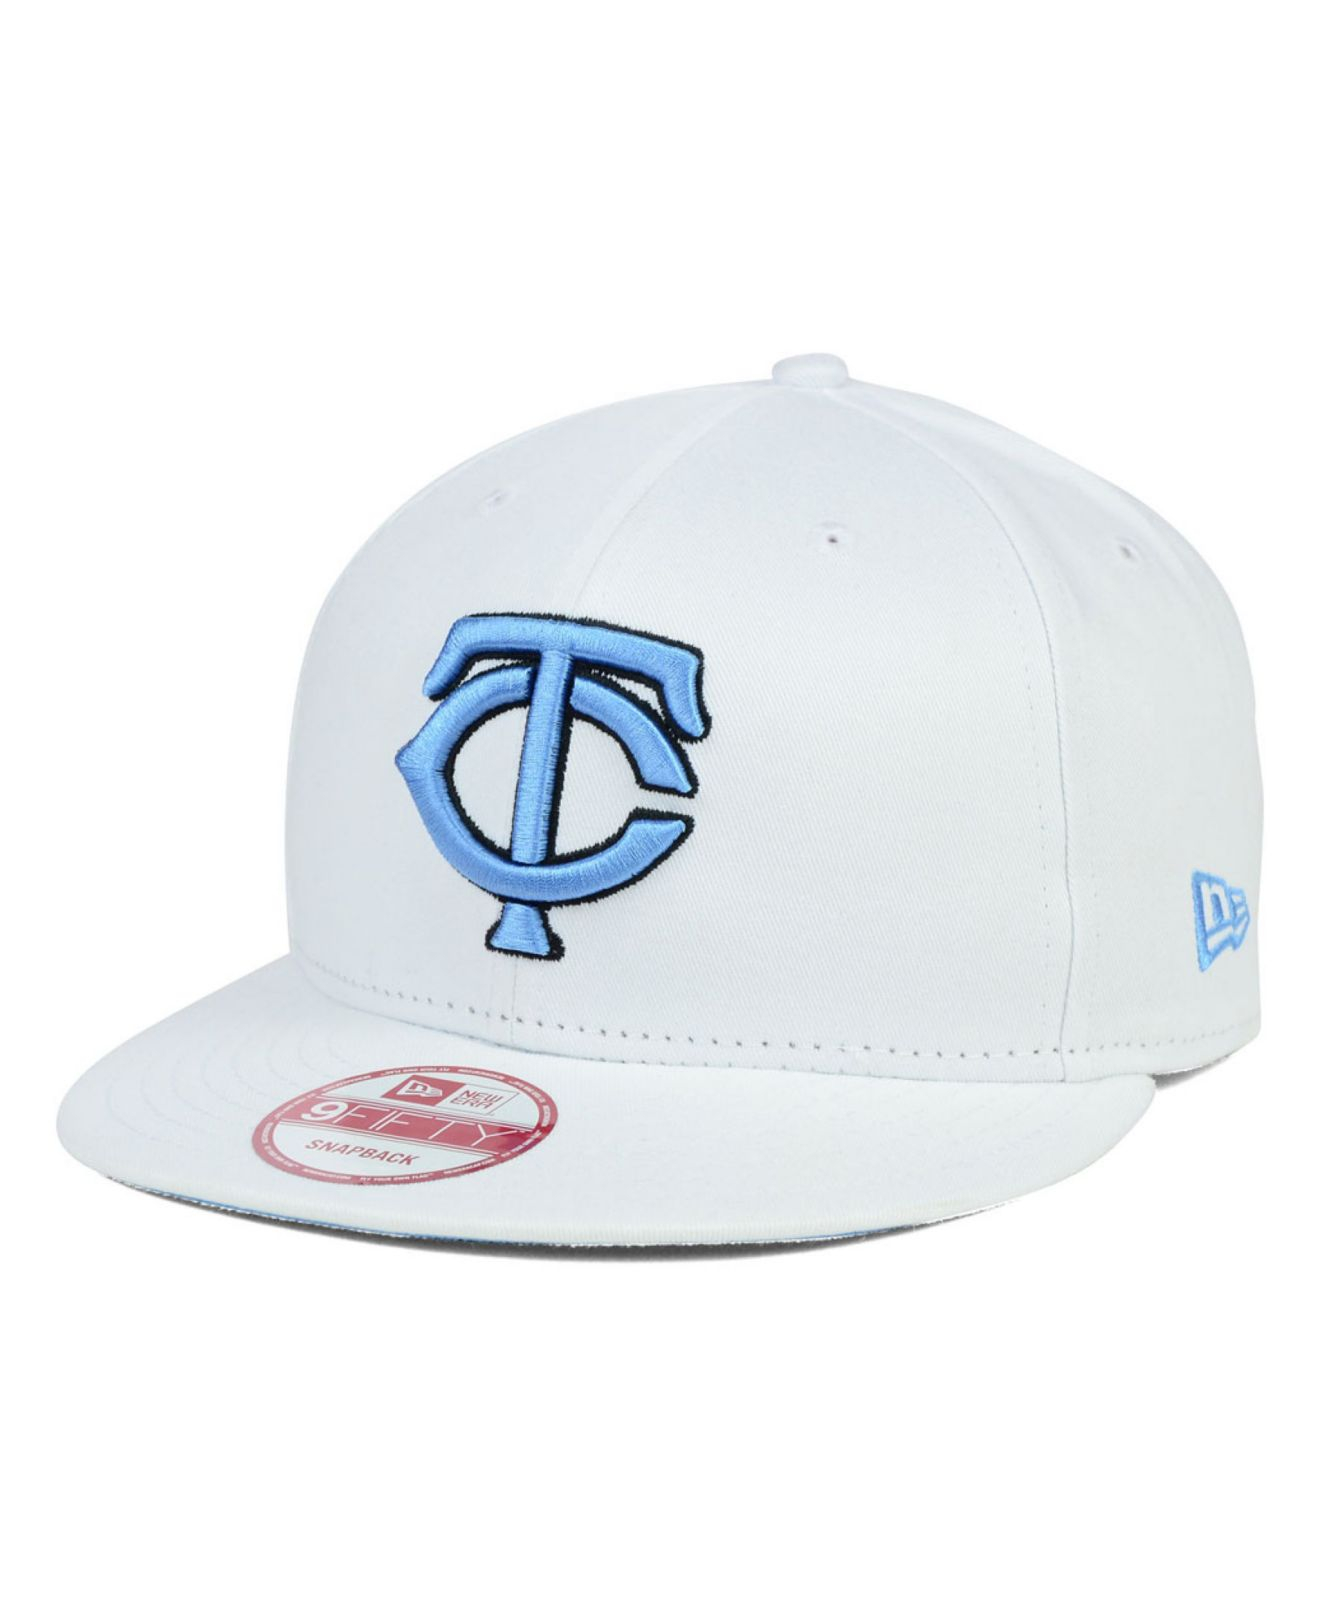 927d55e0aa5 ... where can i buy lyst ktz minnesota twins legend blue hook 9fifty snapback  cap in white